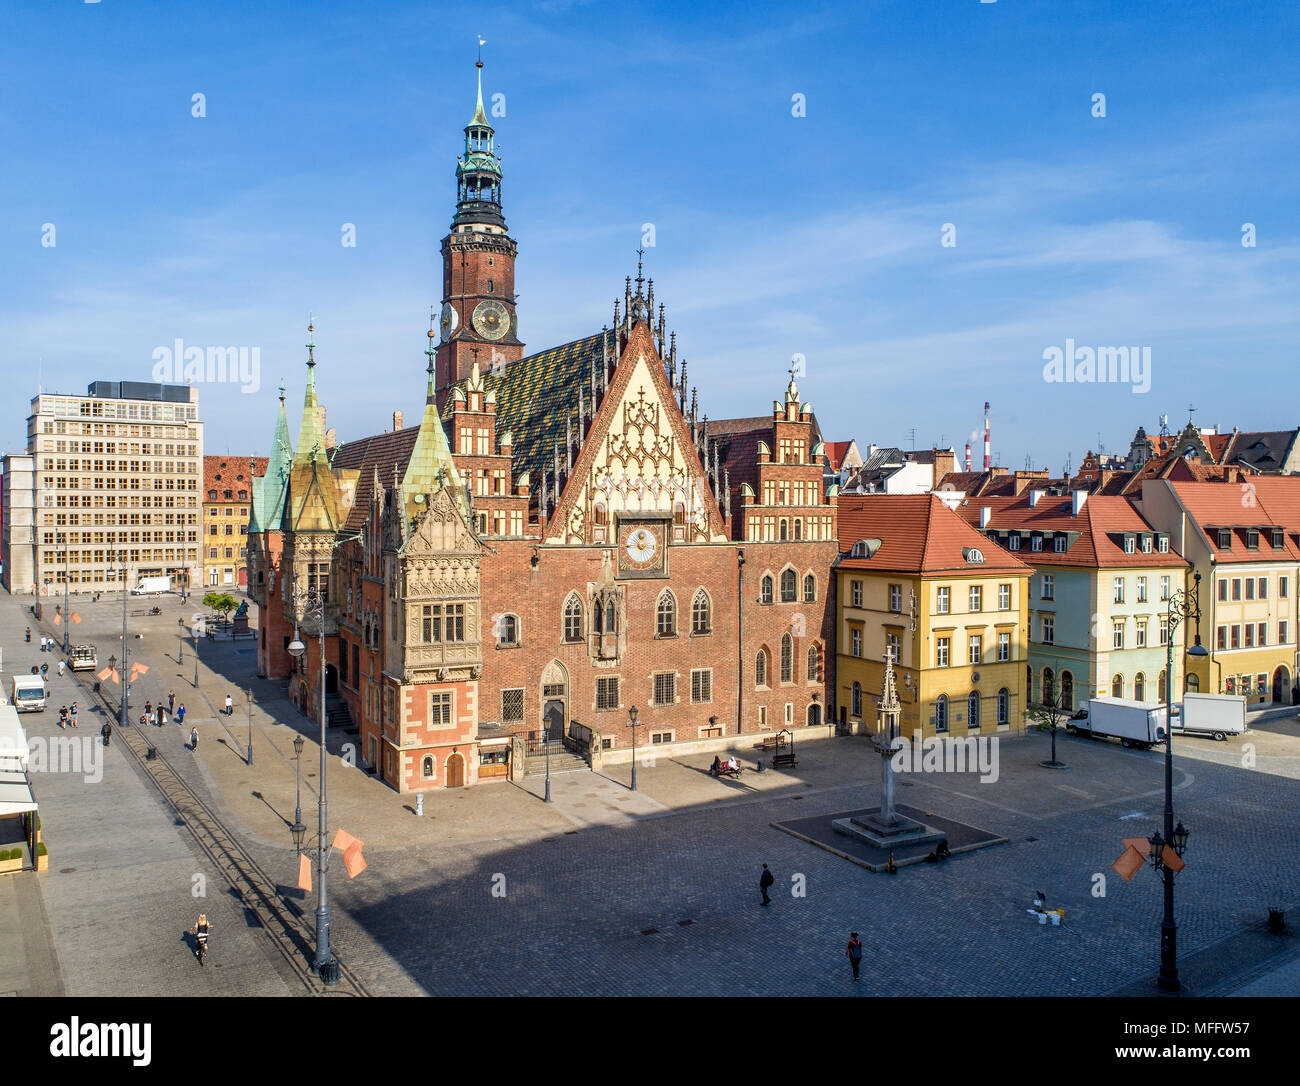 Old Gothic city hall in Wroclaw (Breslau) in Poland, built in 14th century and historic market square (Rynek). Aerial view. Early morning - Stock Image